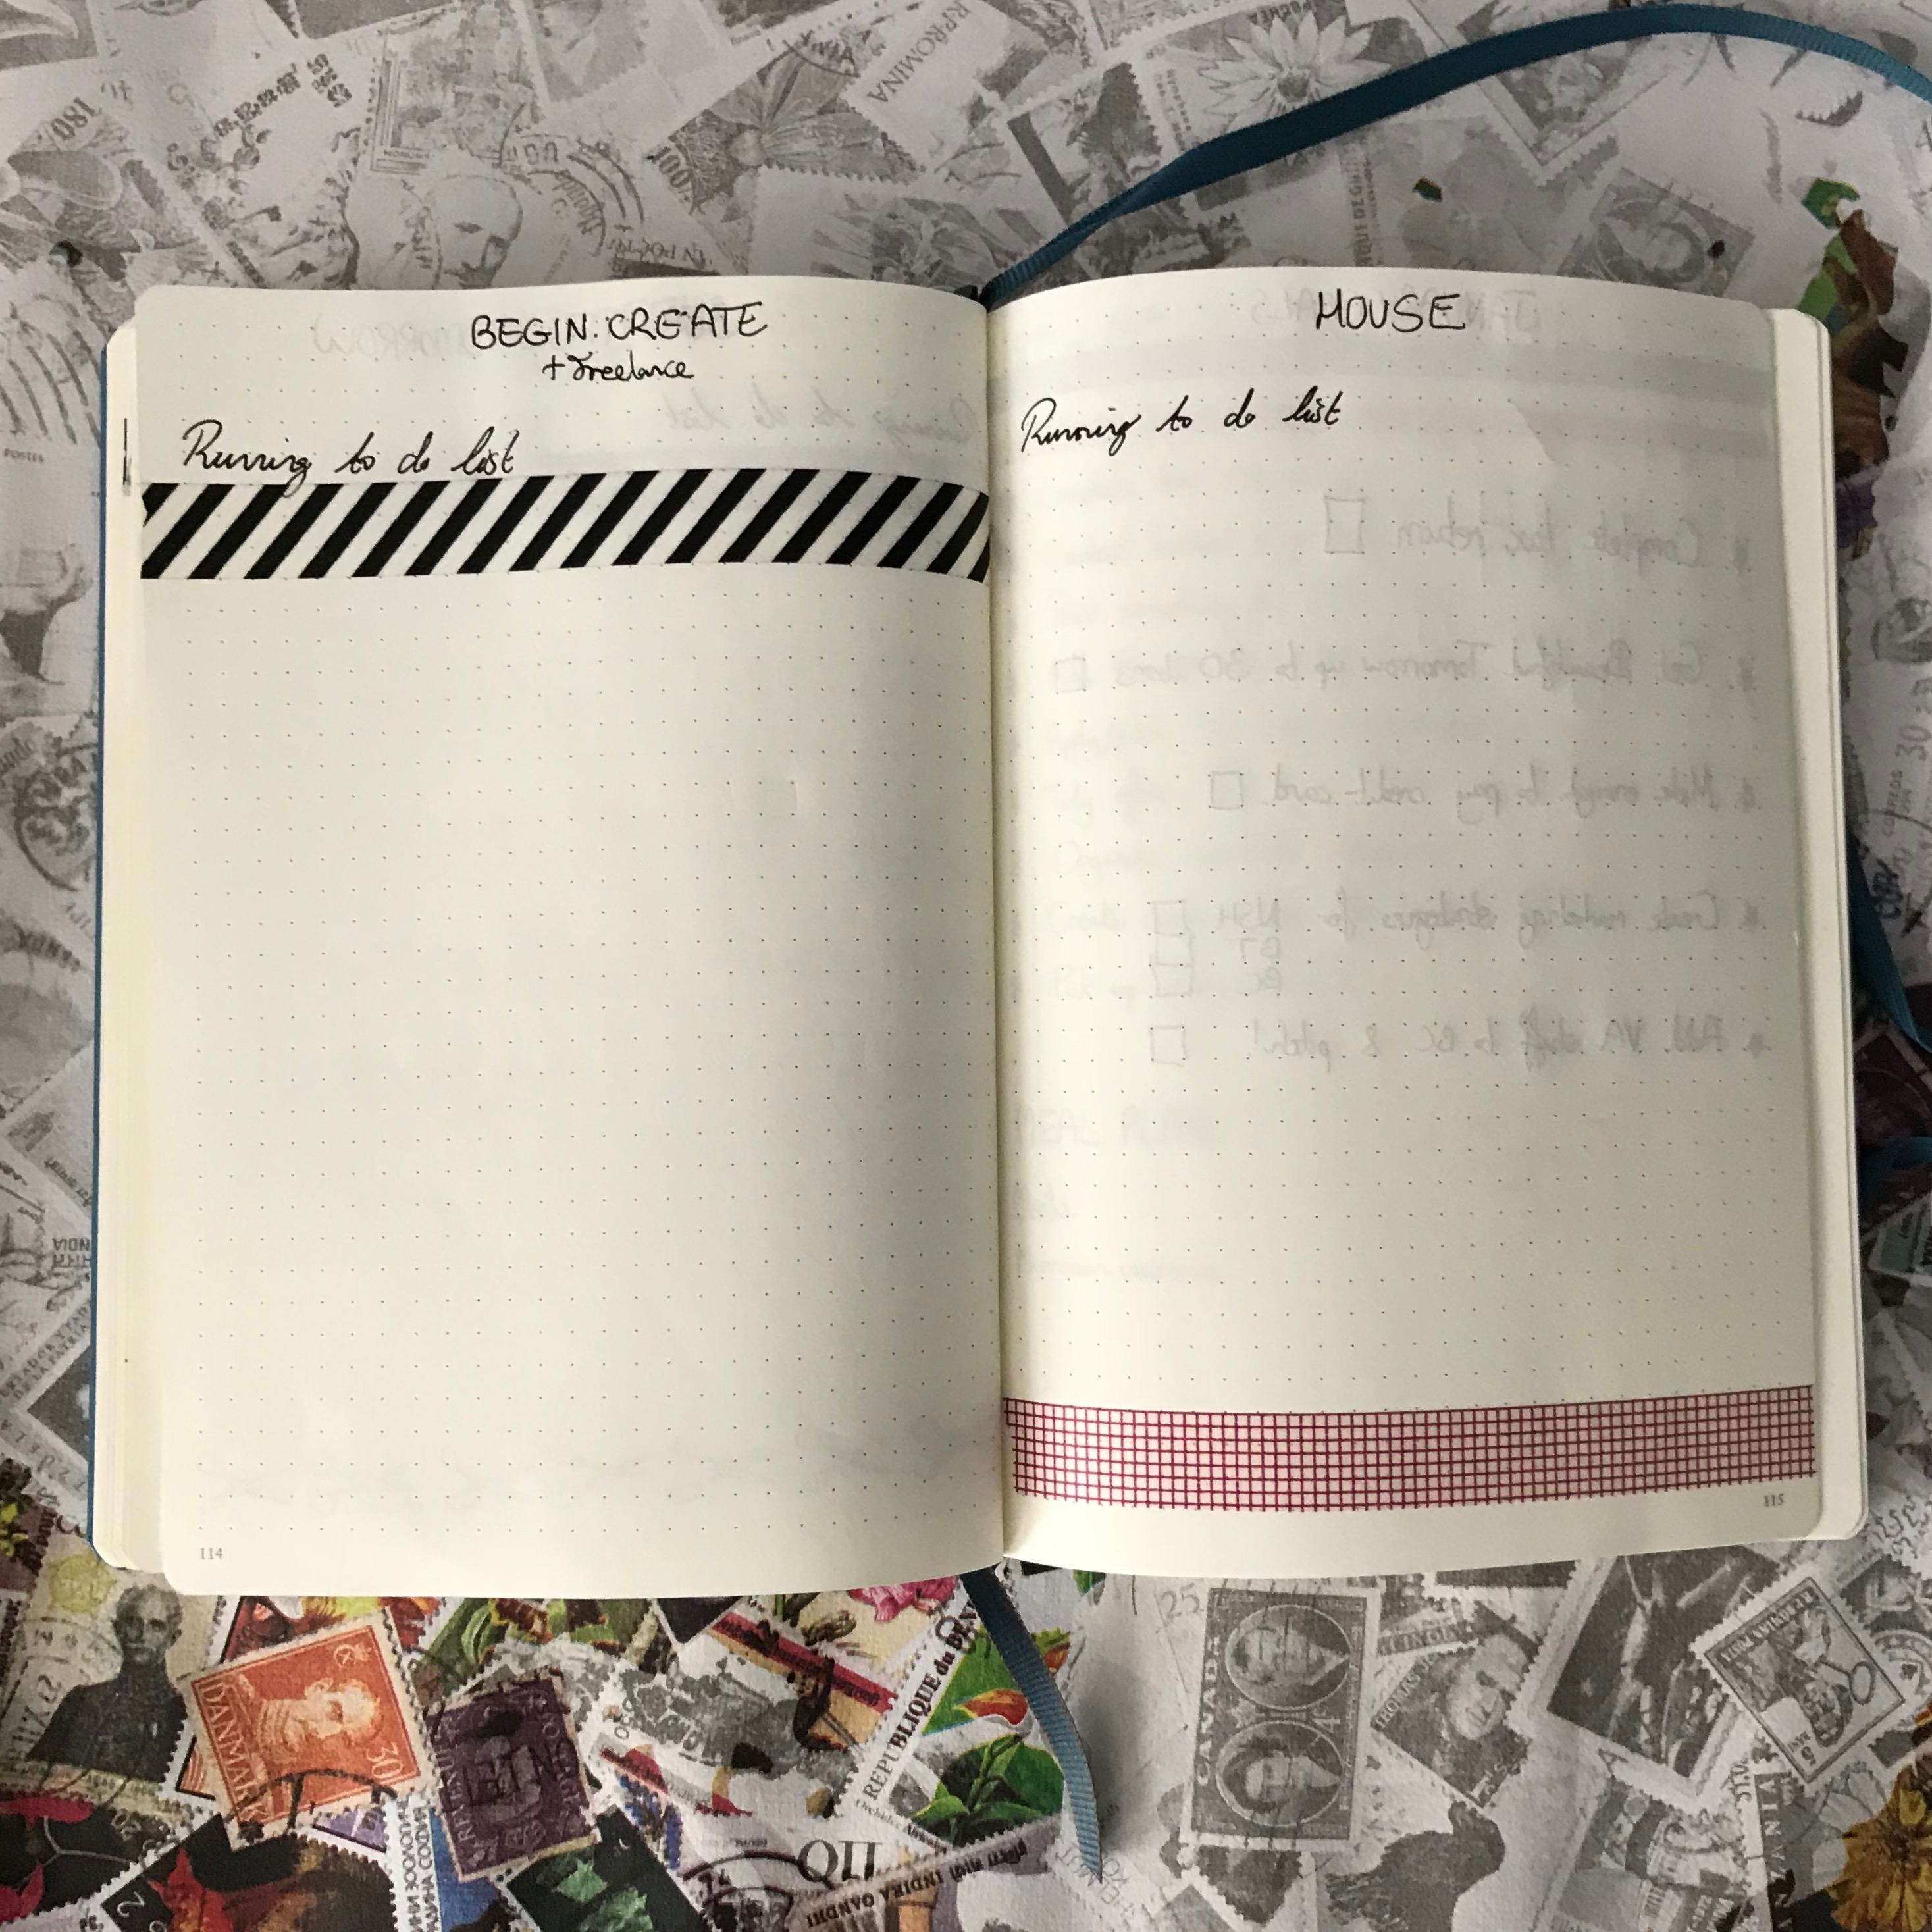 bullet journal setup - running to do lists